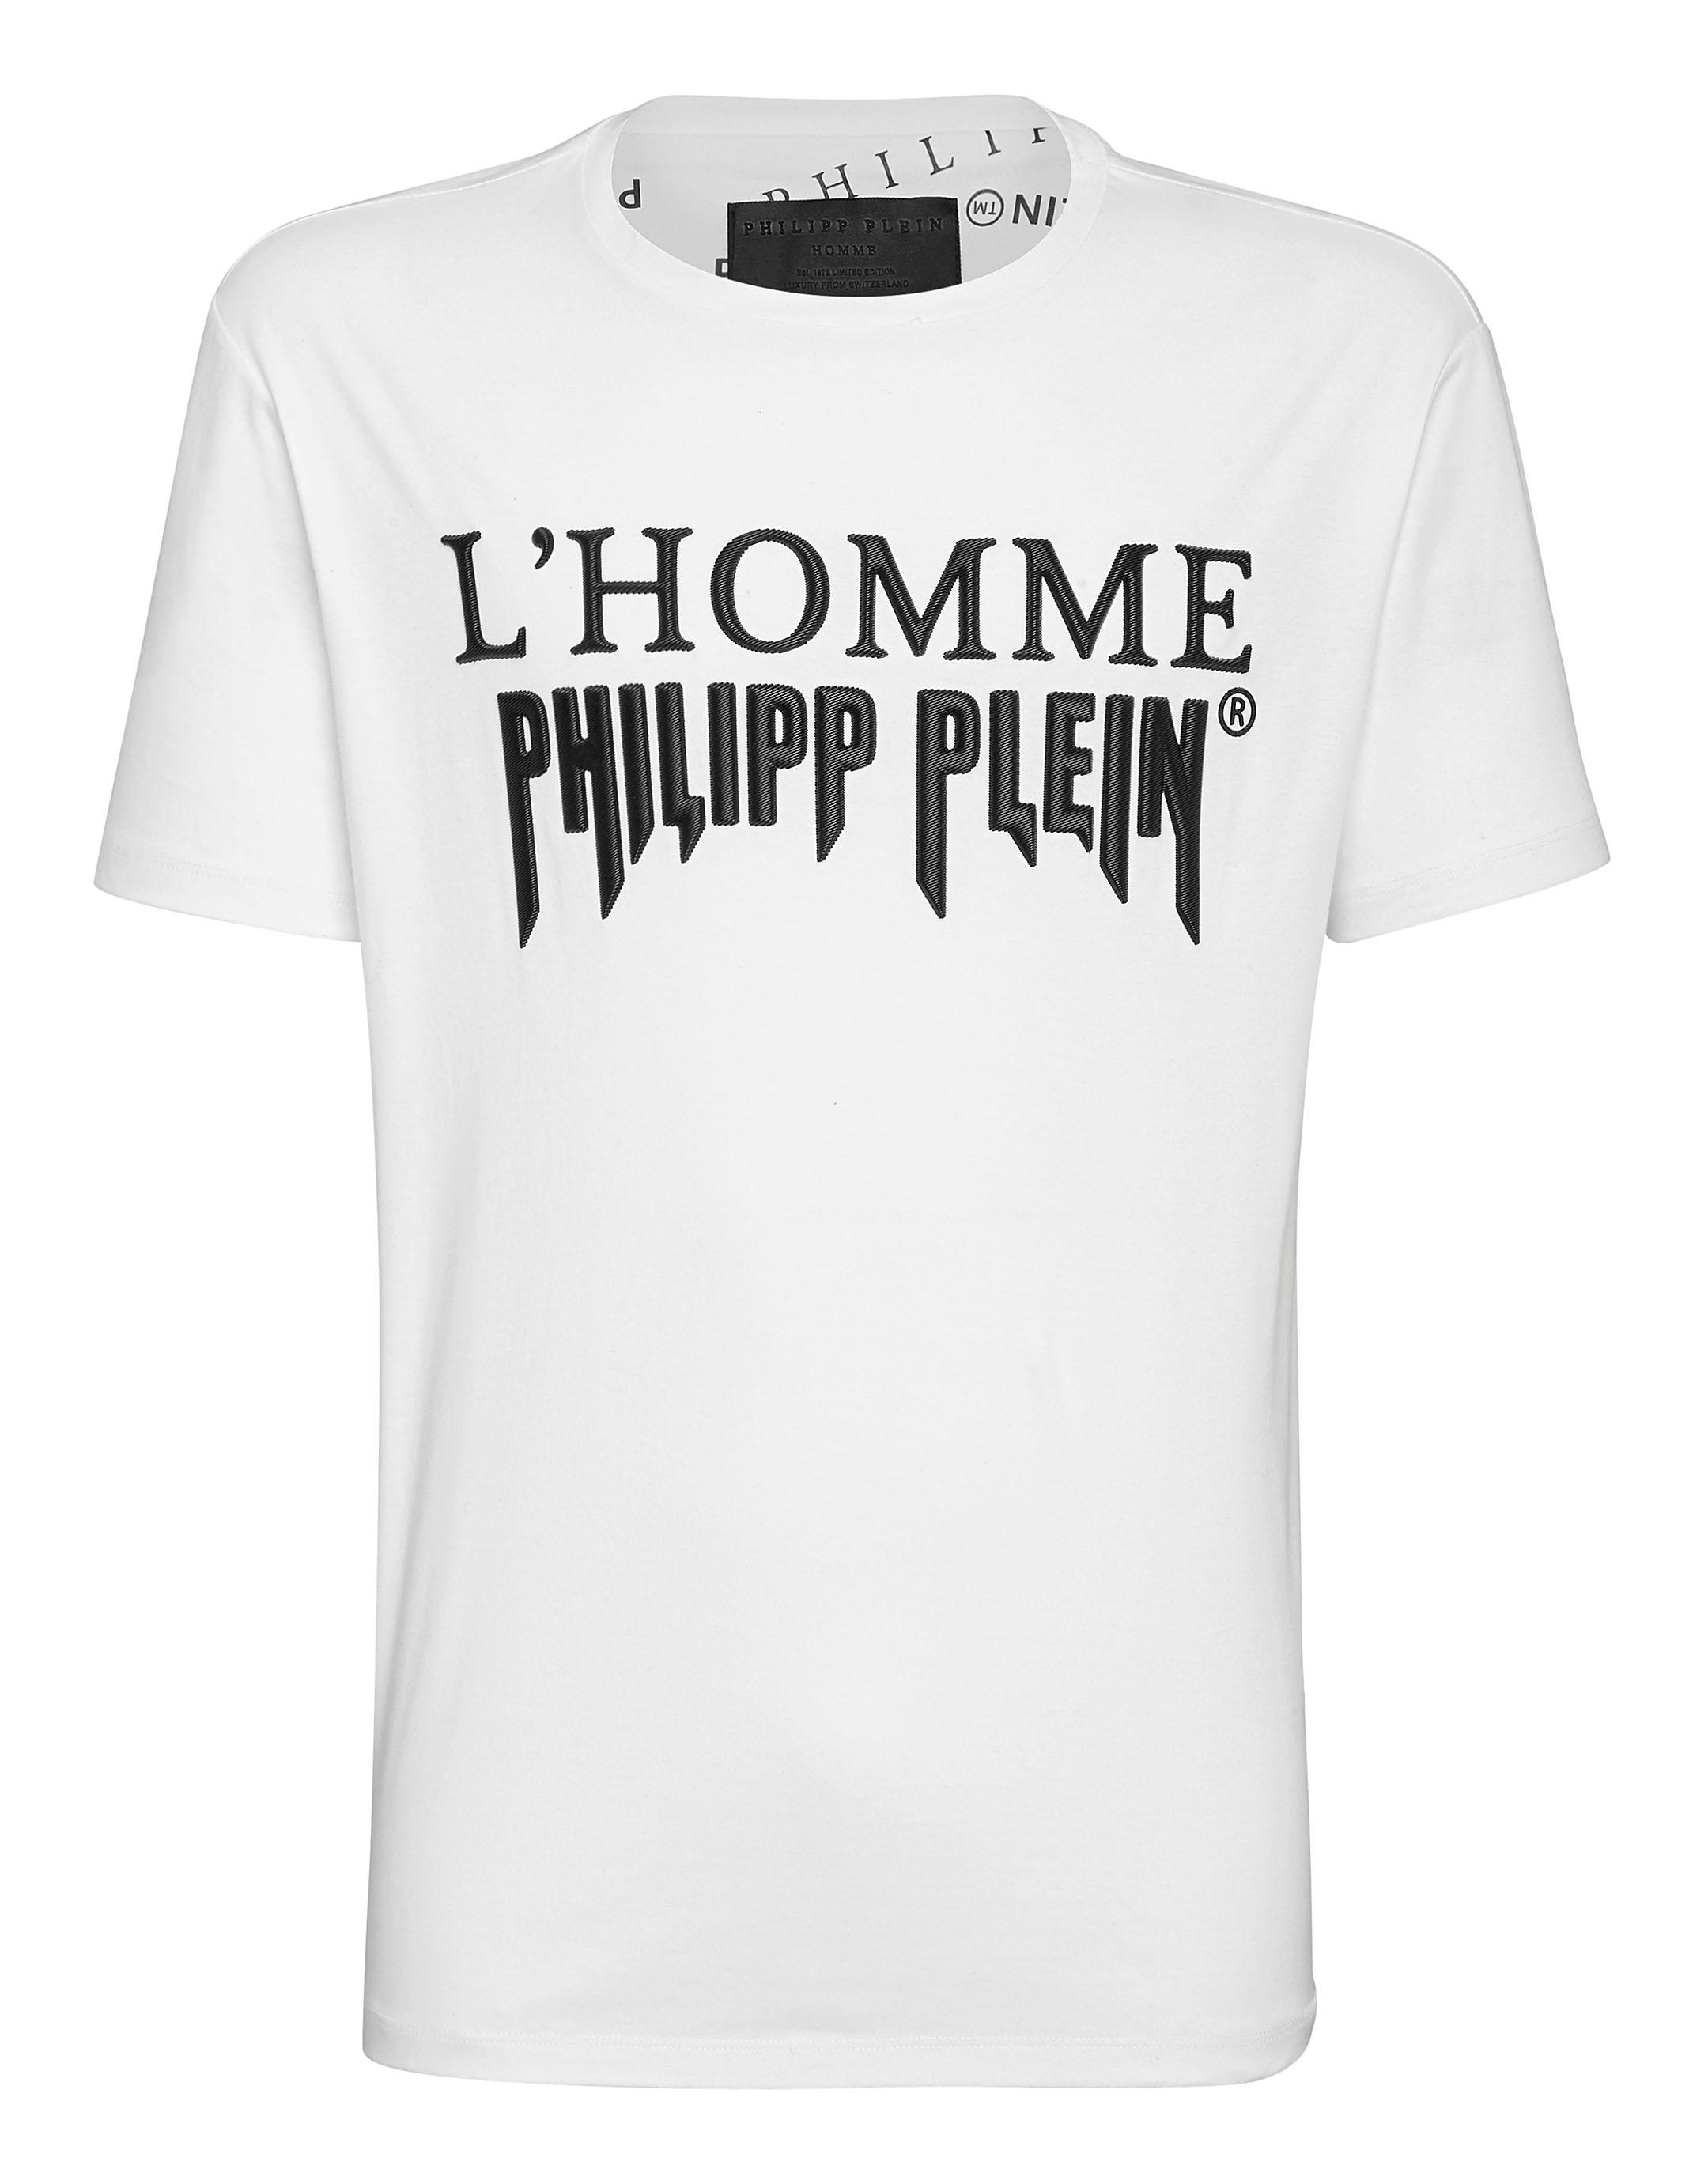 4b2a9b2bdc1e T-shirt Platinum Cut Round Neck Rock PP | Philipp Plein